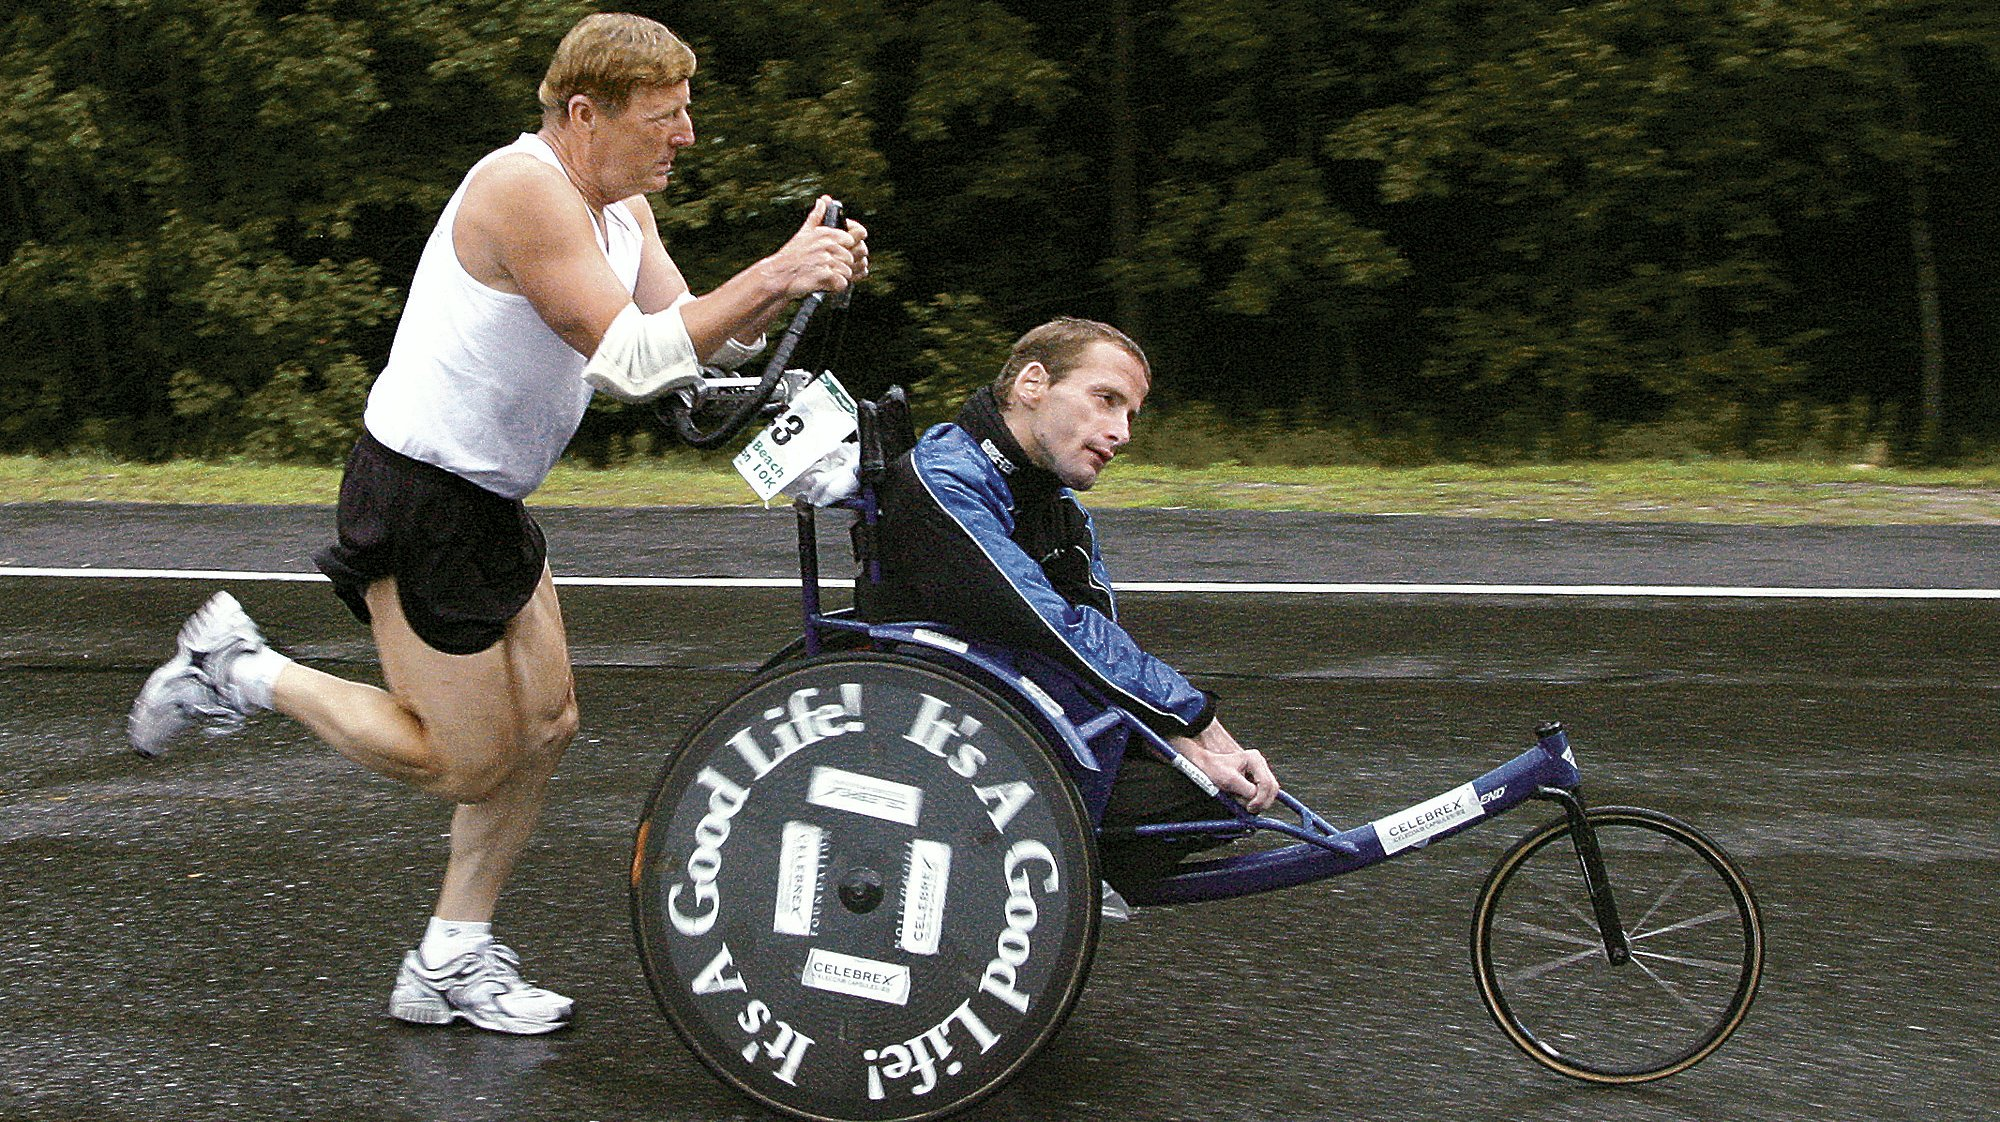 Dick Hoyt pushes his son Rick off from the starting line at the Peoples Beach to Beacon 10K road rac